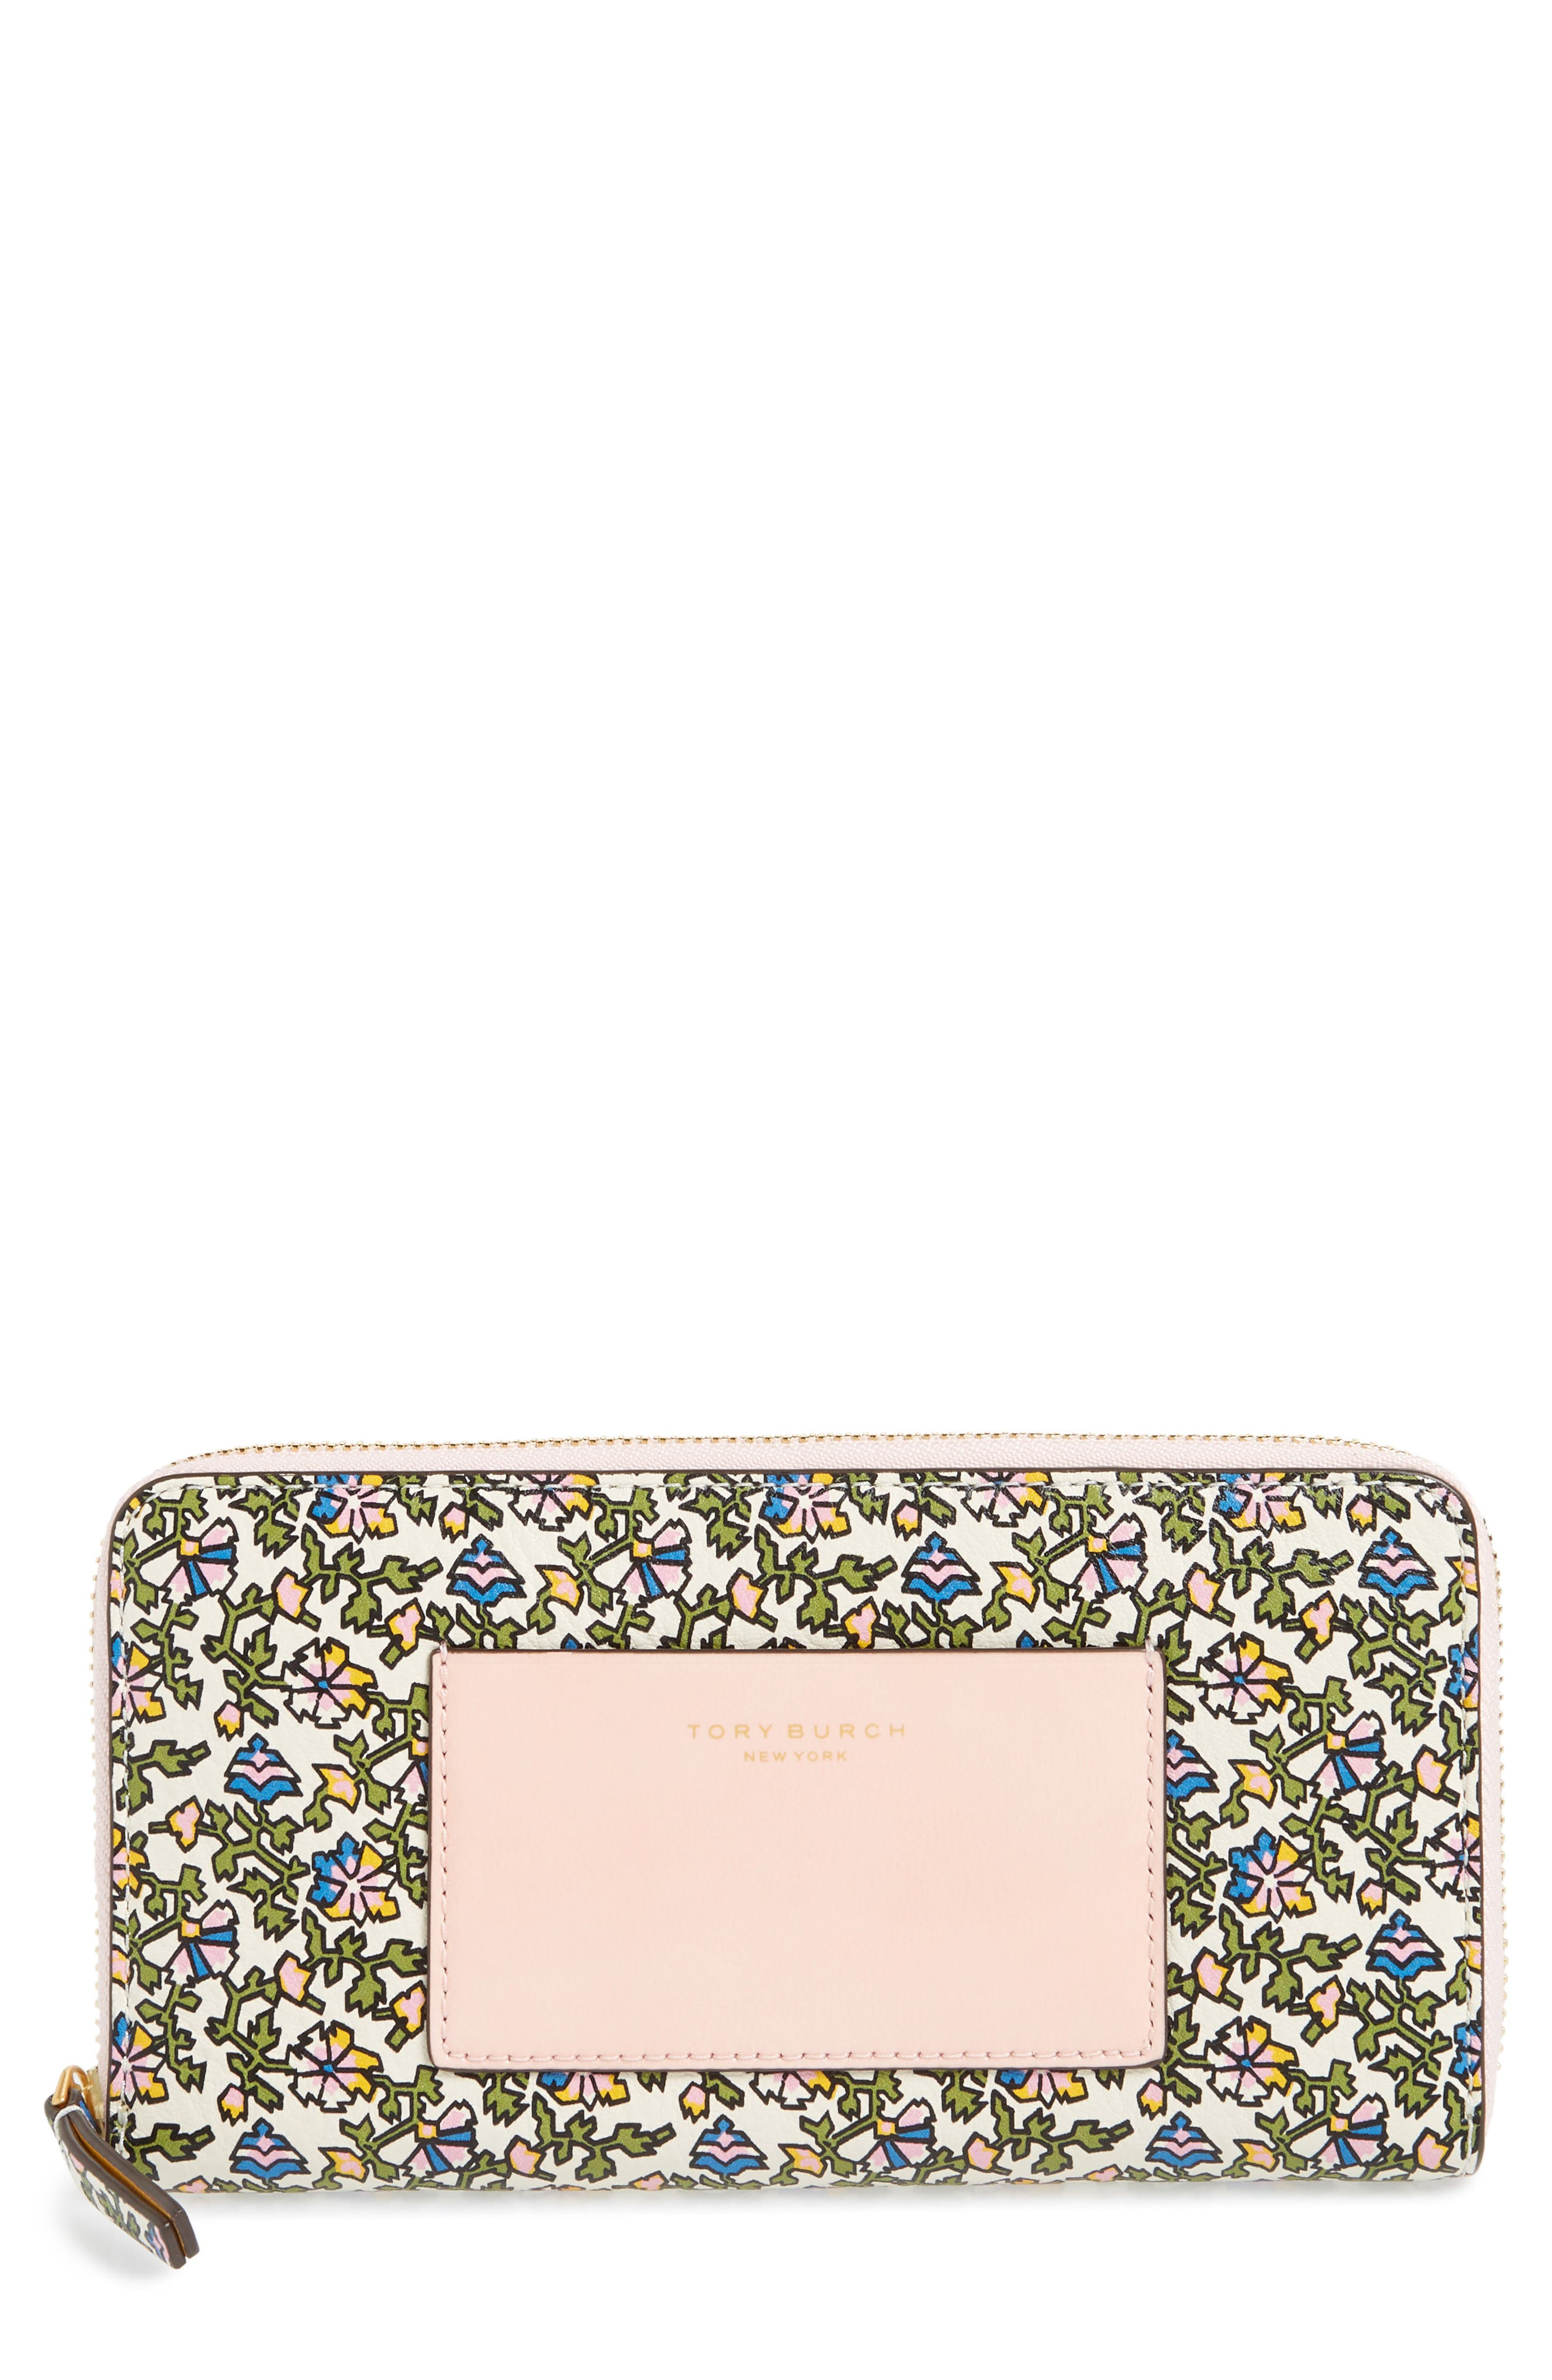 Floral Print Leather Zip Around Wallet,                             Main thumbnail 1, color,                             100